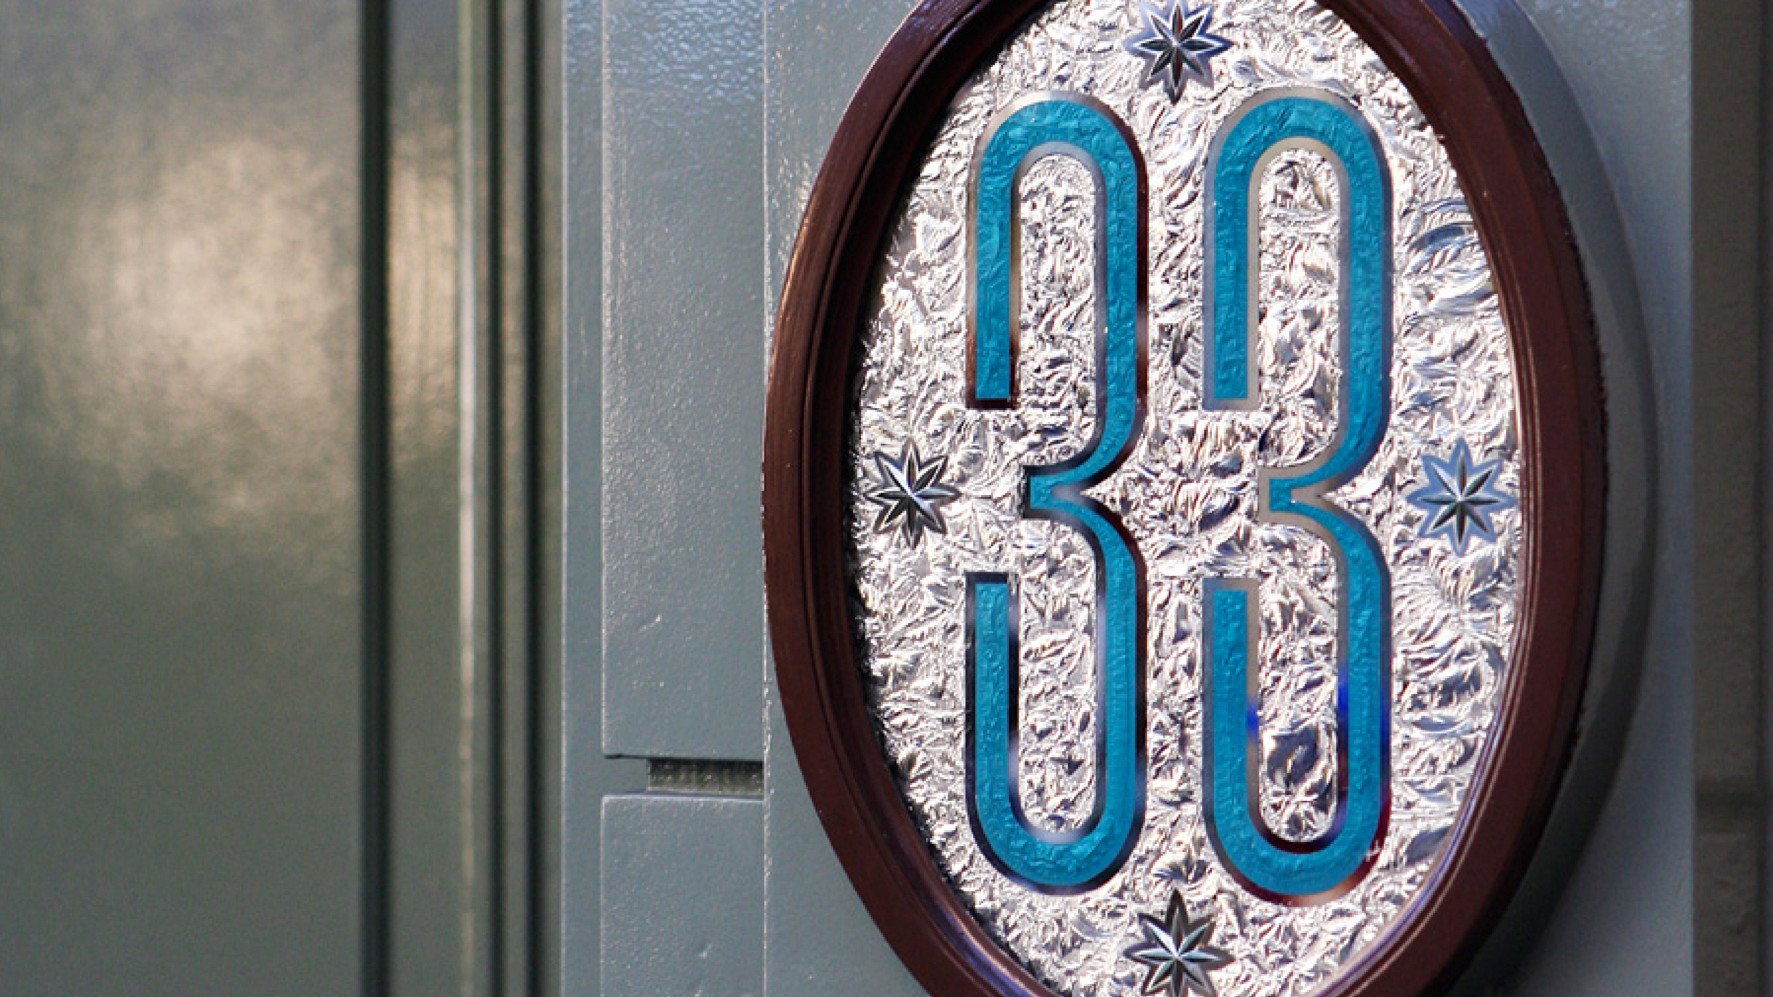 New Orleans Square Disneyland Club 33 Disneyland Set to Reopen